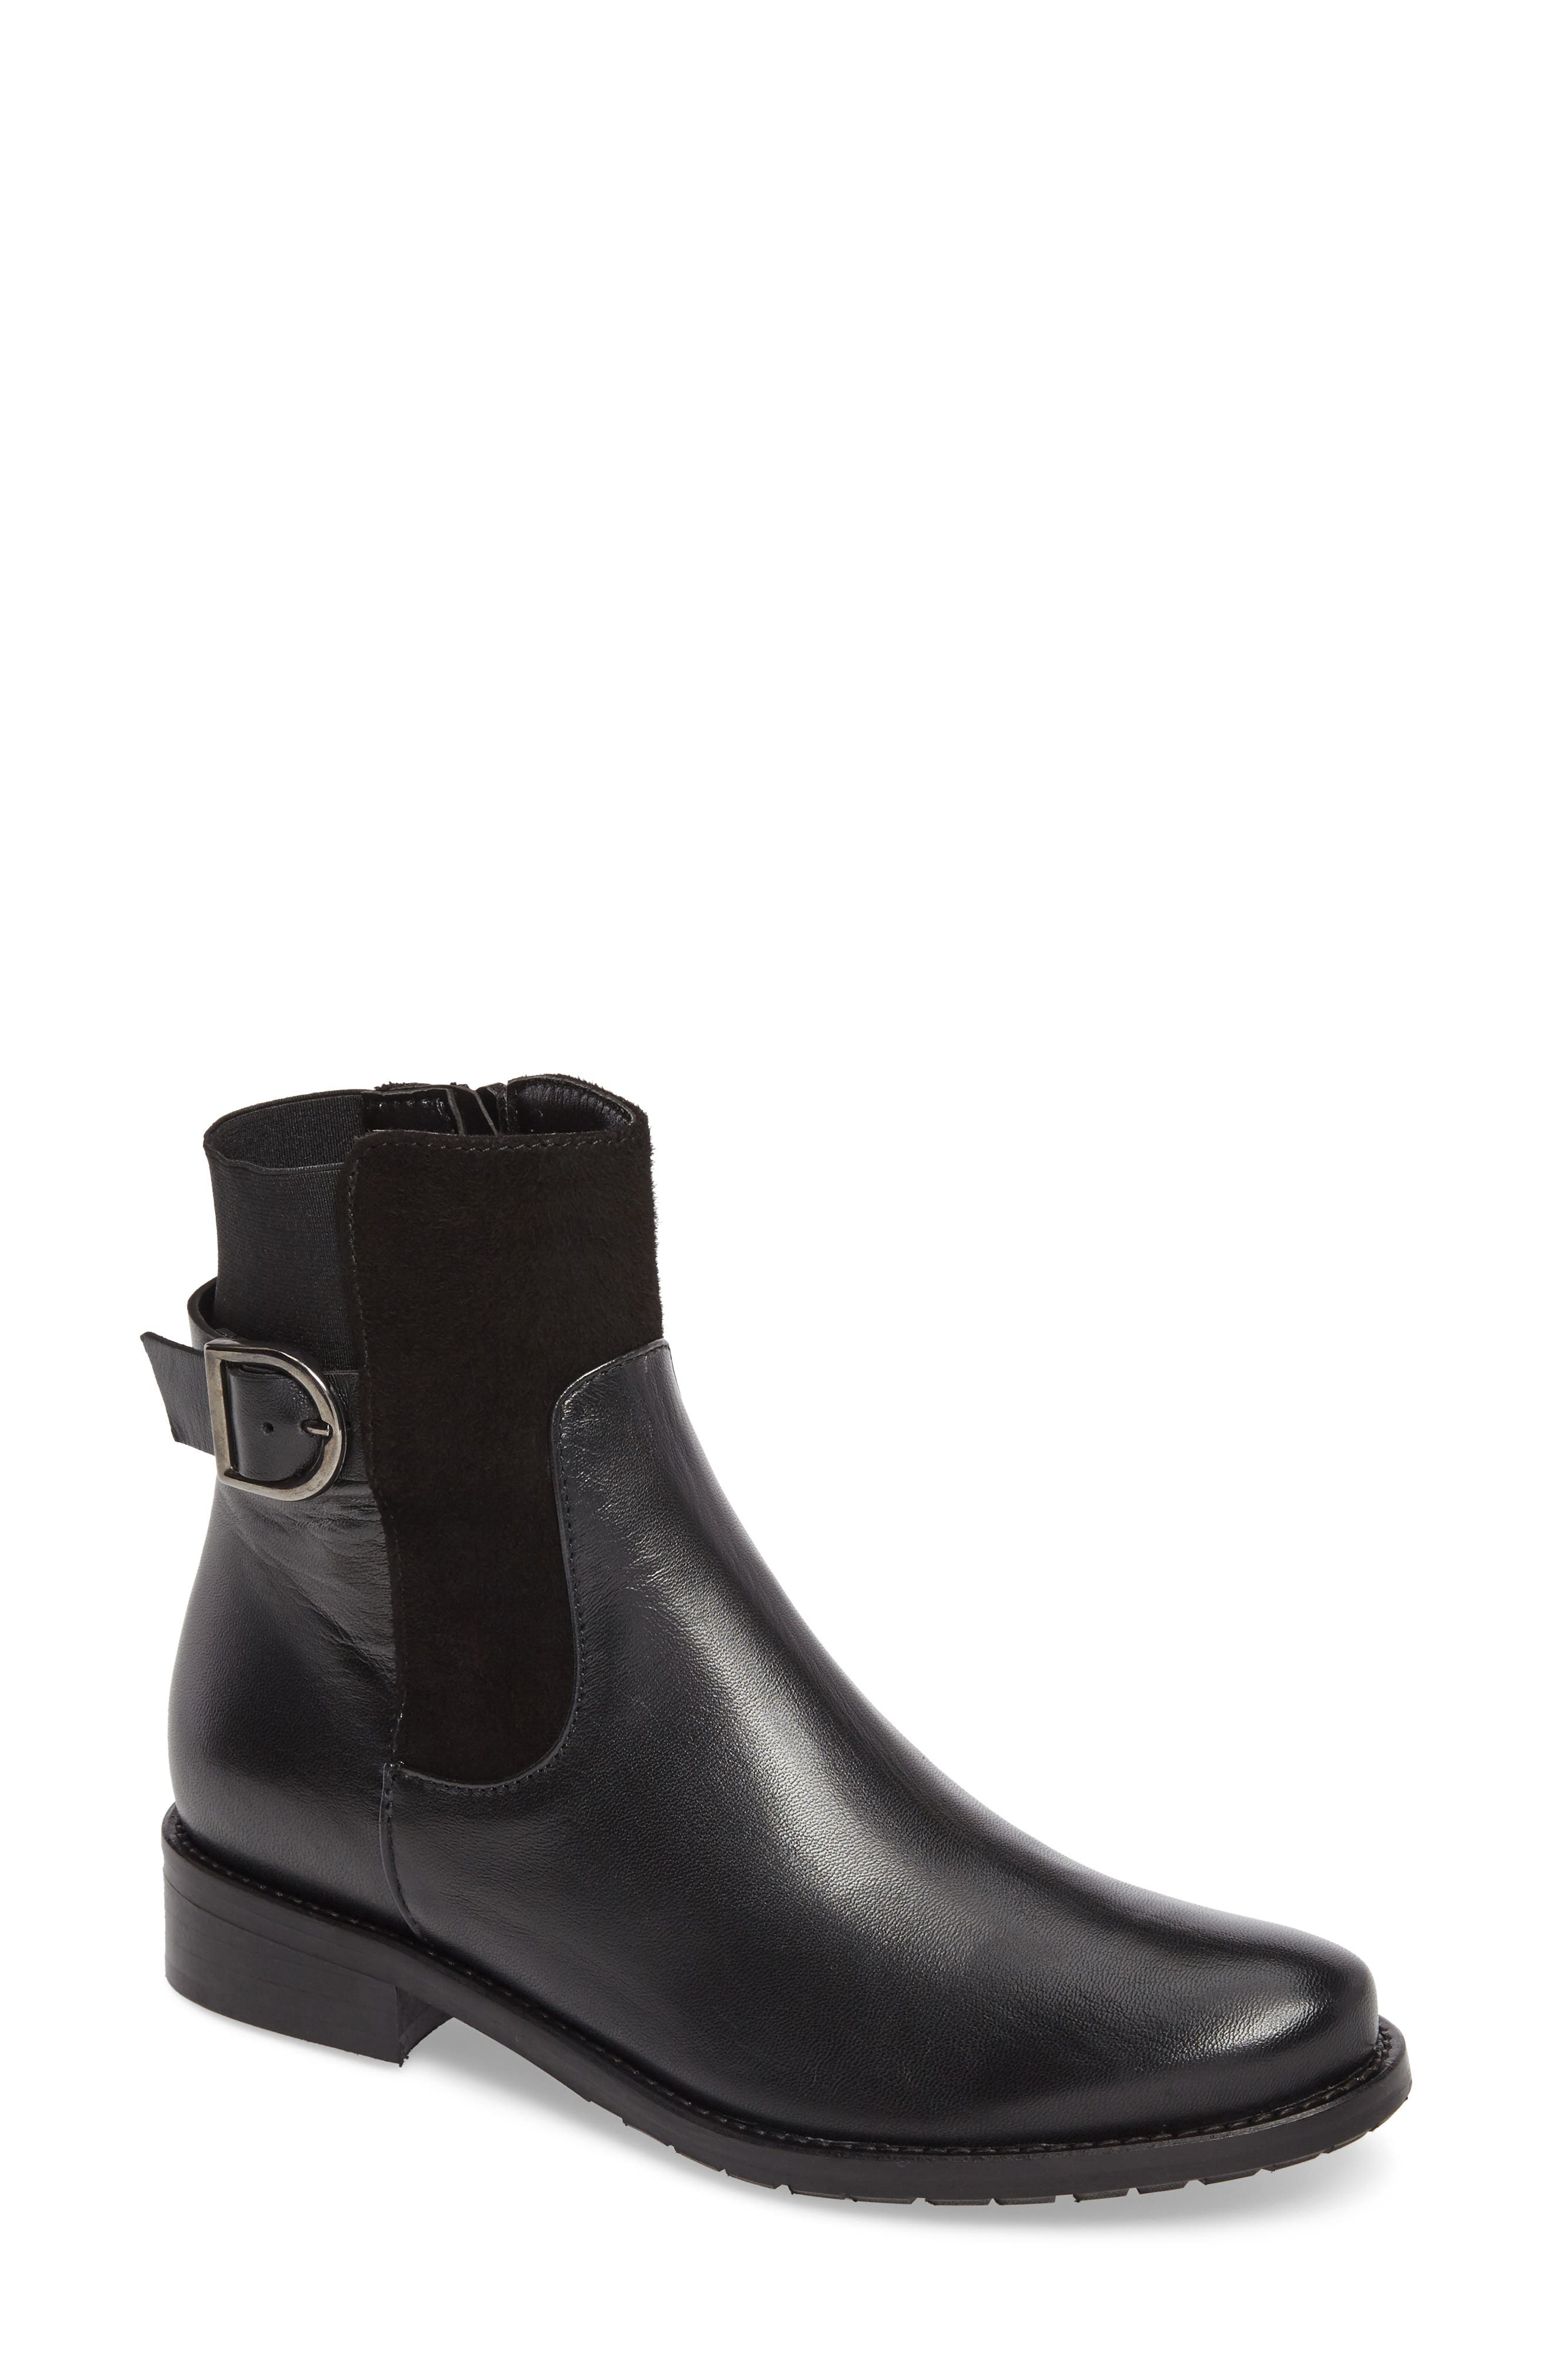 Samira Bootie,                         Main,                         color, Black Leather